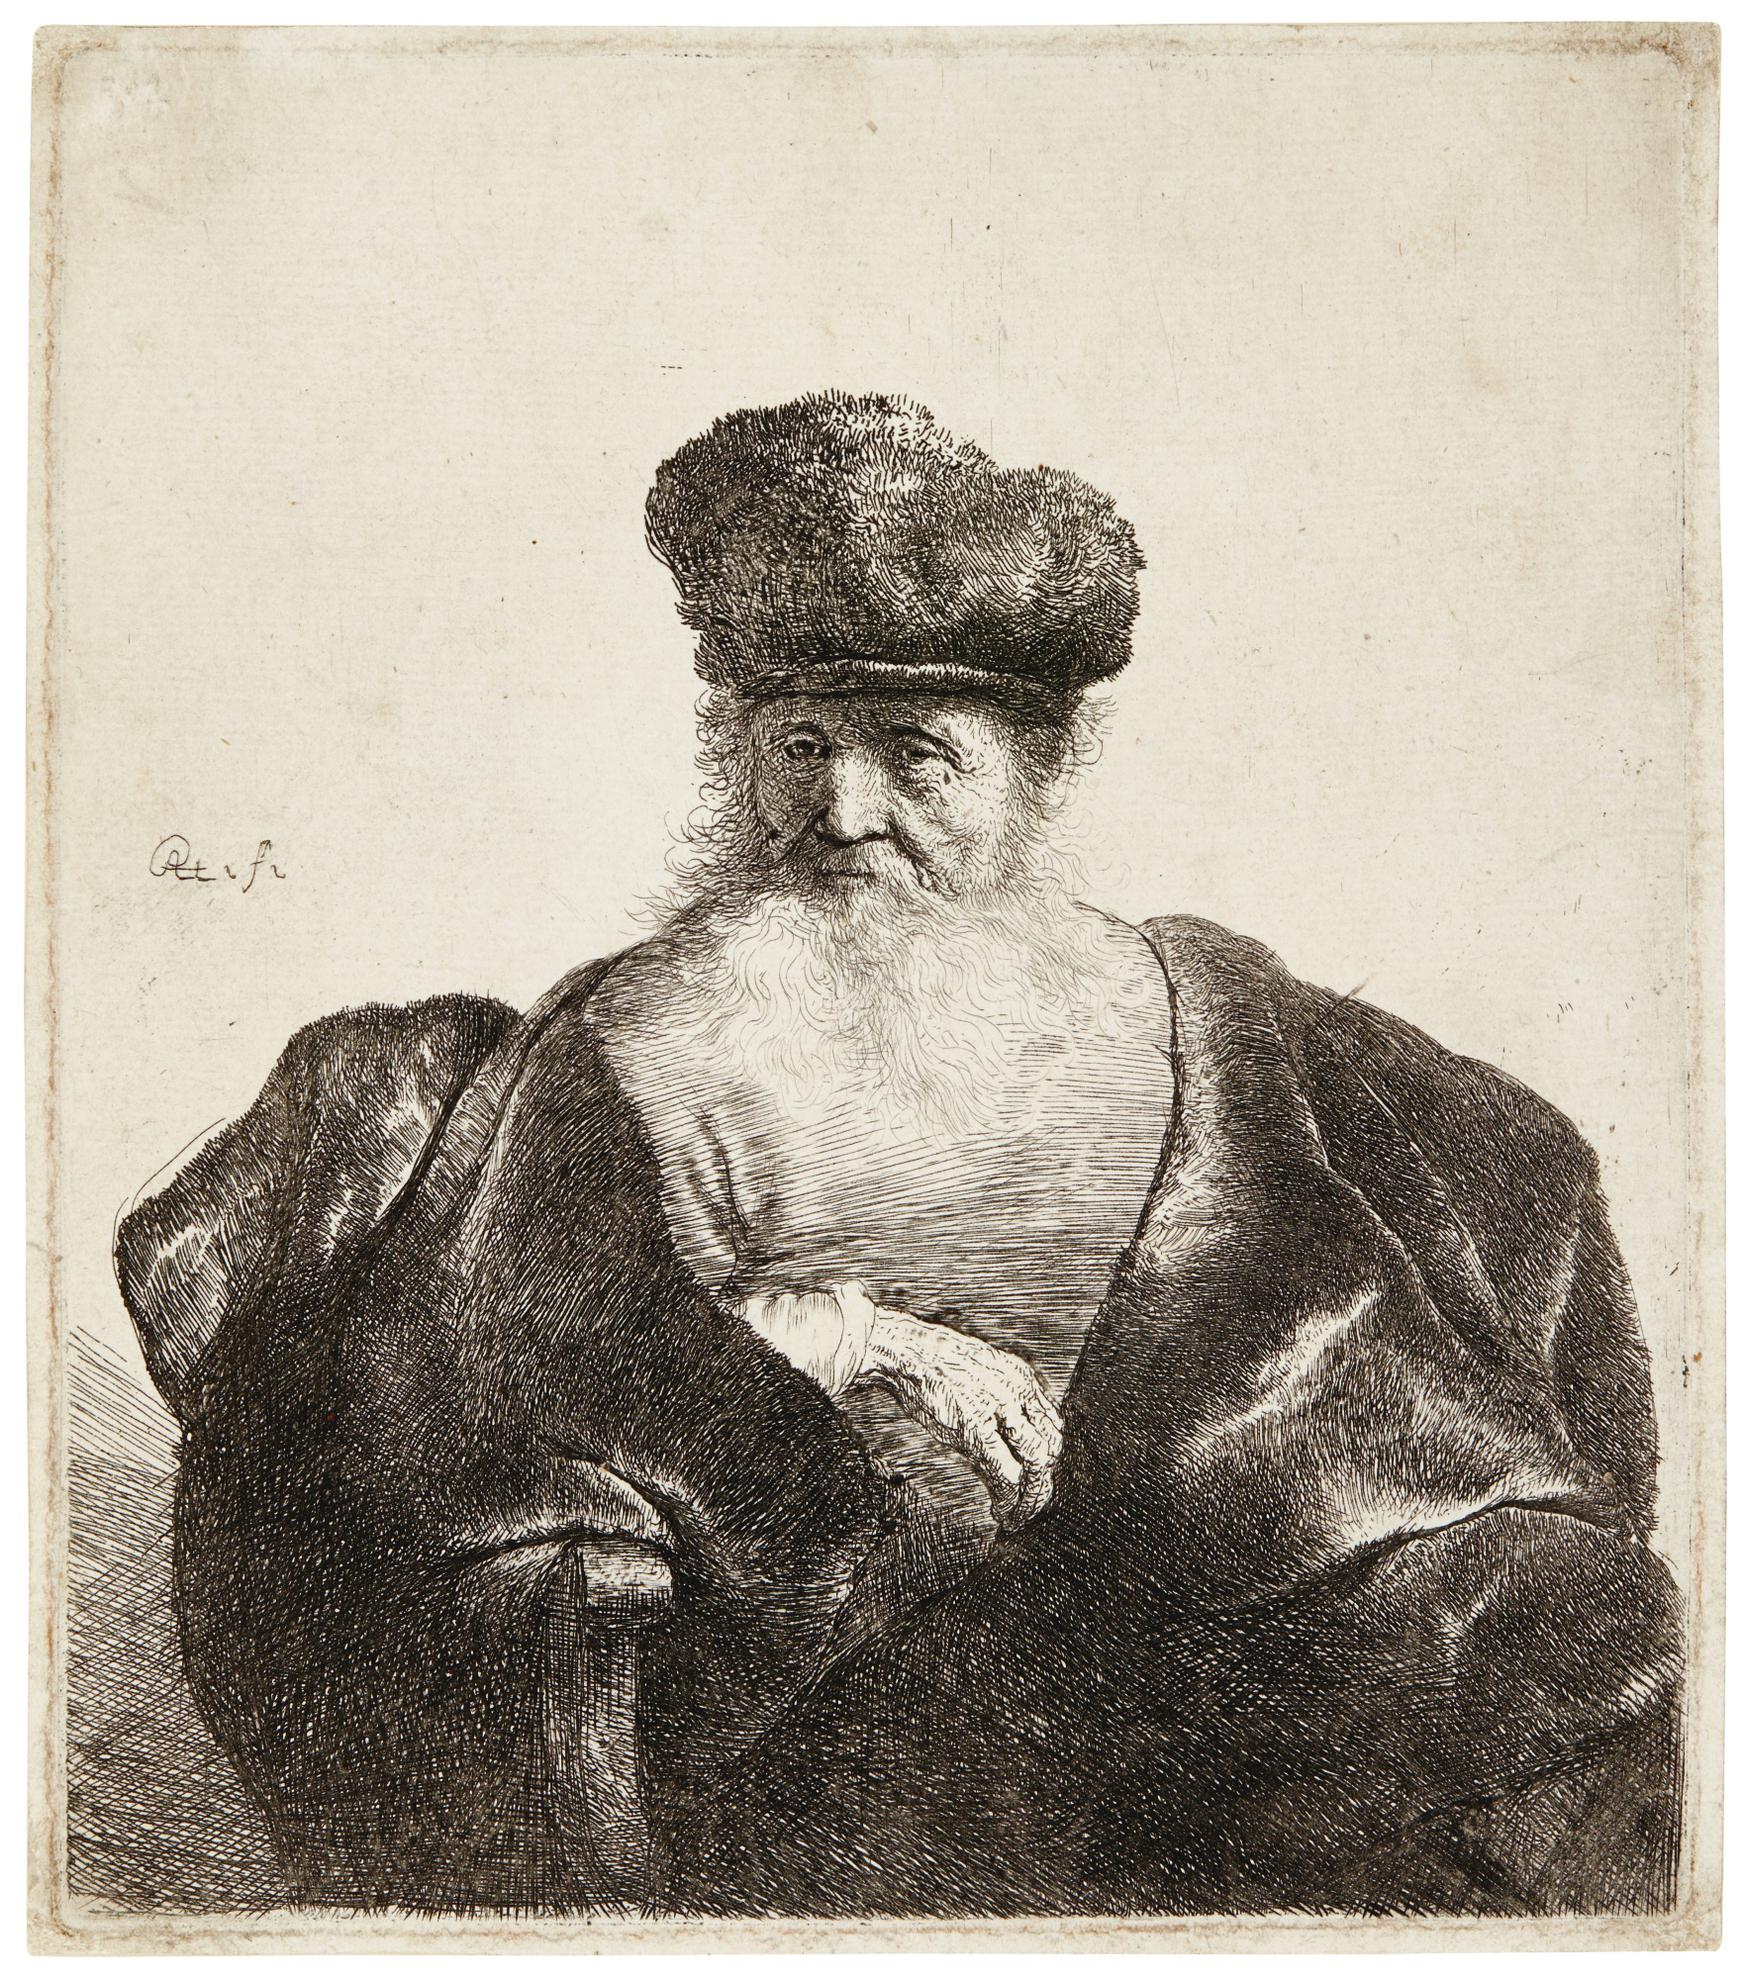 Rembrandt van Rijn-Old Man With Beard, Fur Cap, And Velvet Cloak (B., Holl. 262; New Holl. 92; H. 92)-1631